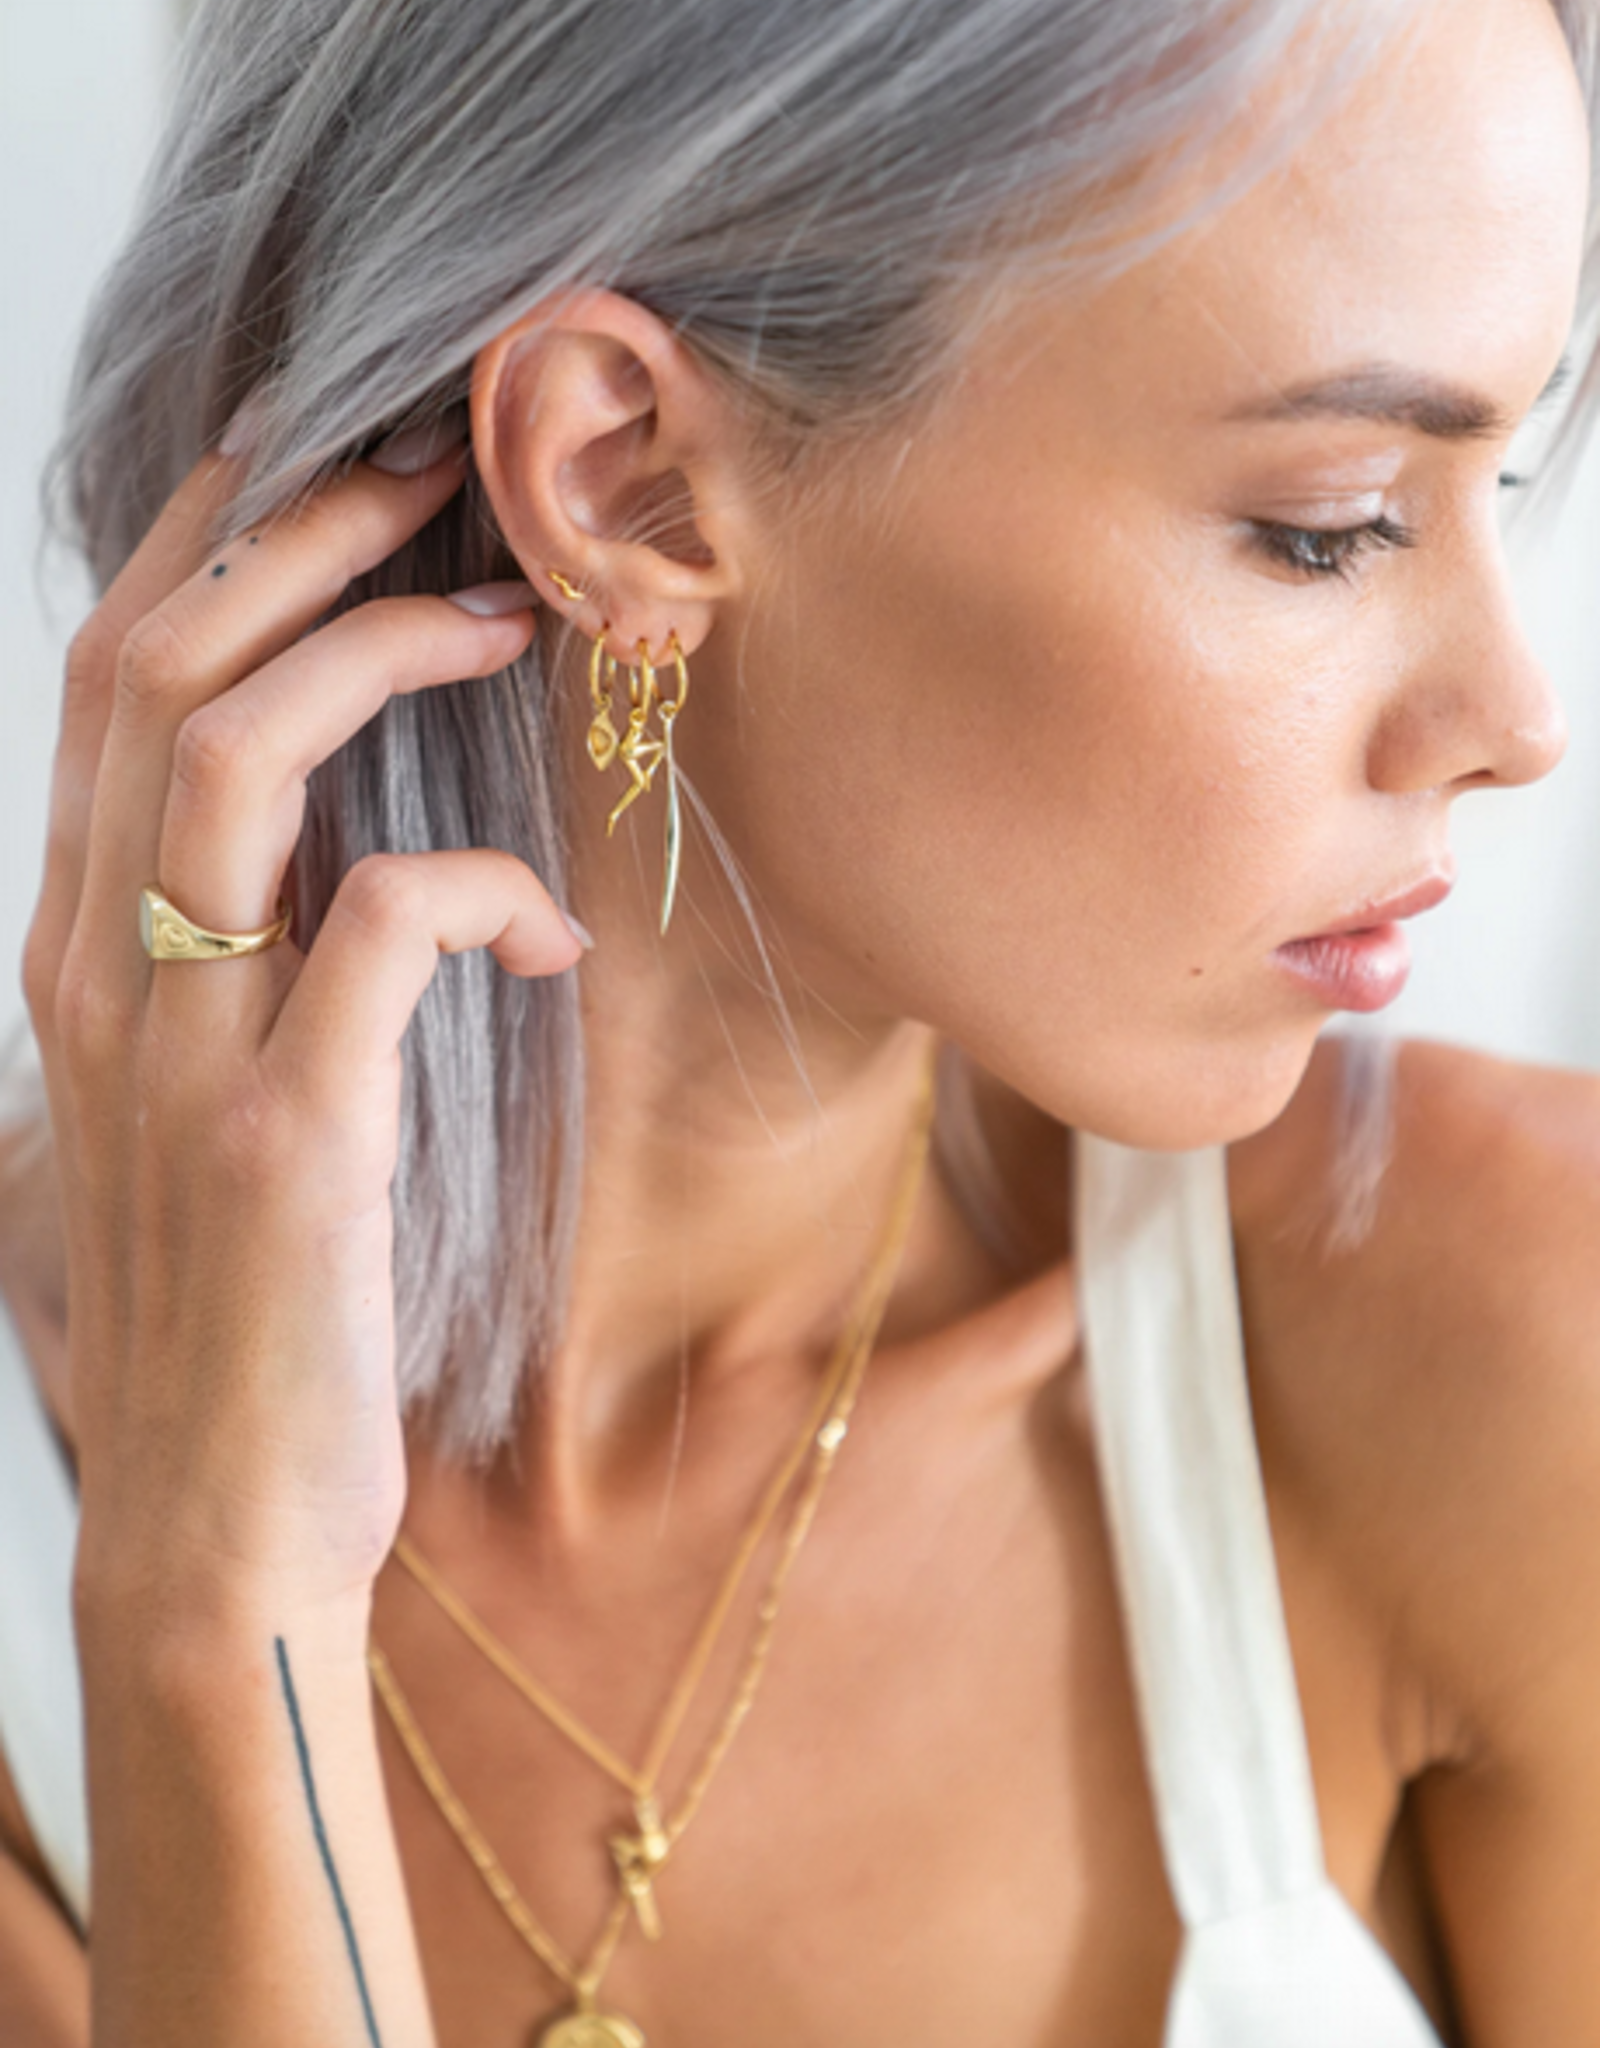 Flawed Flare studs gold